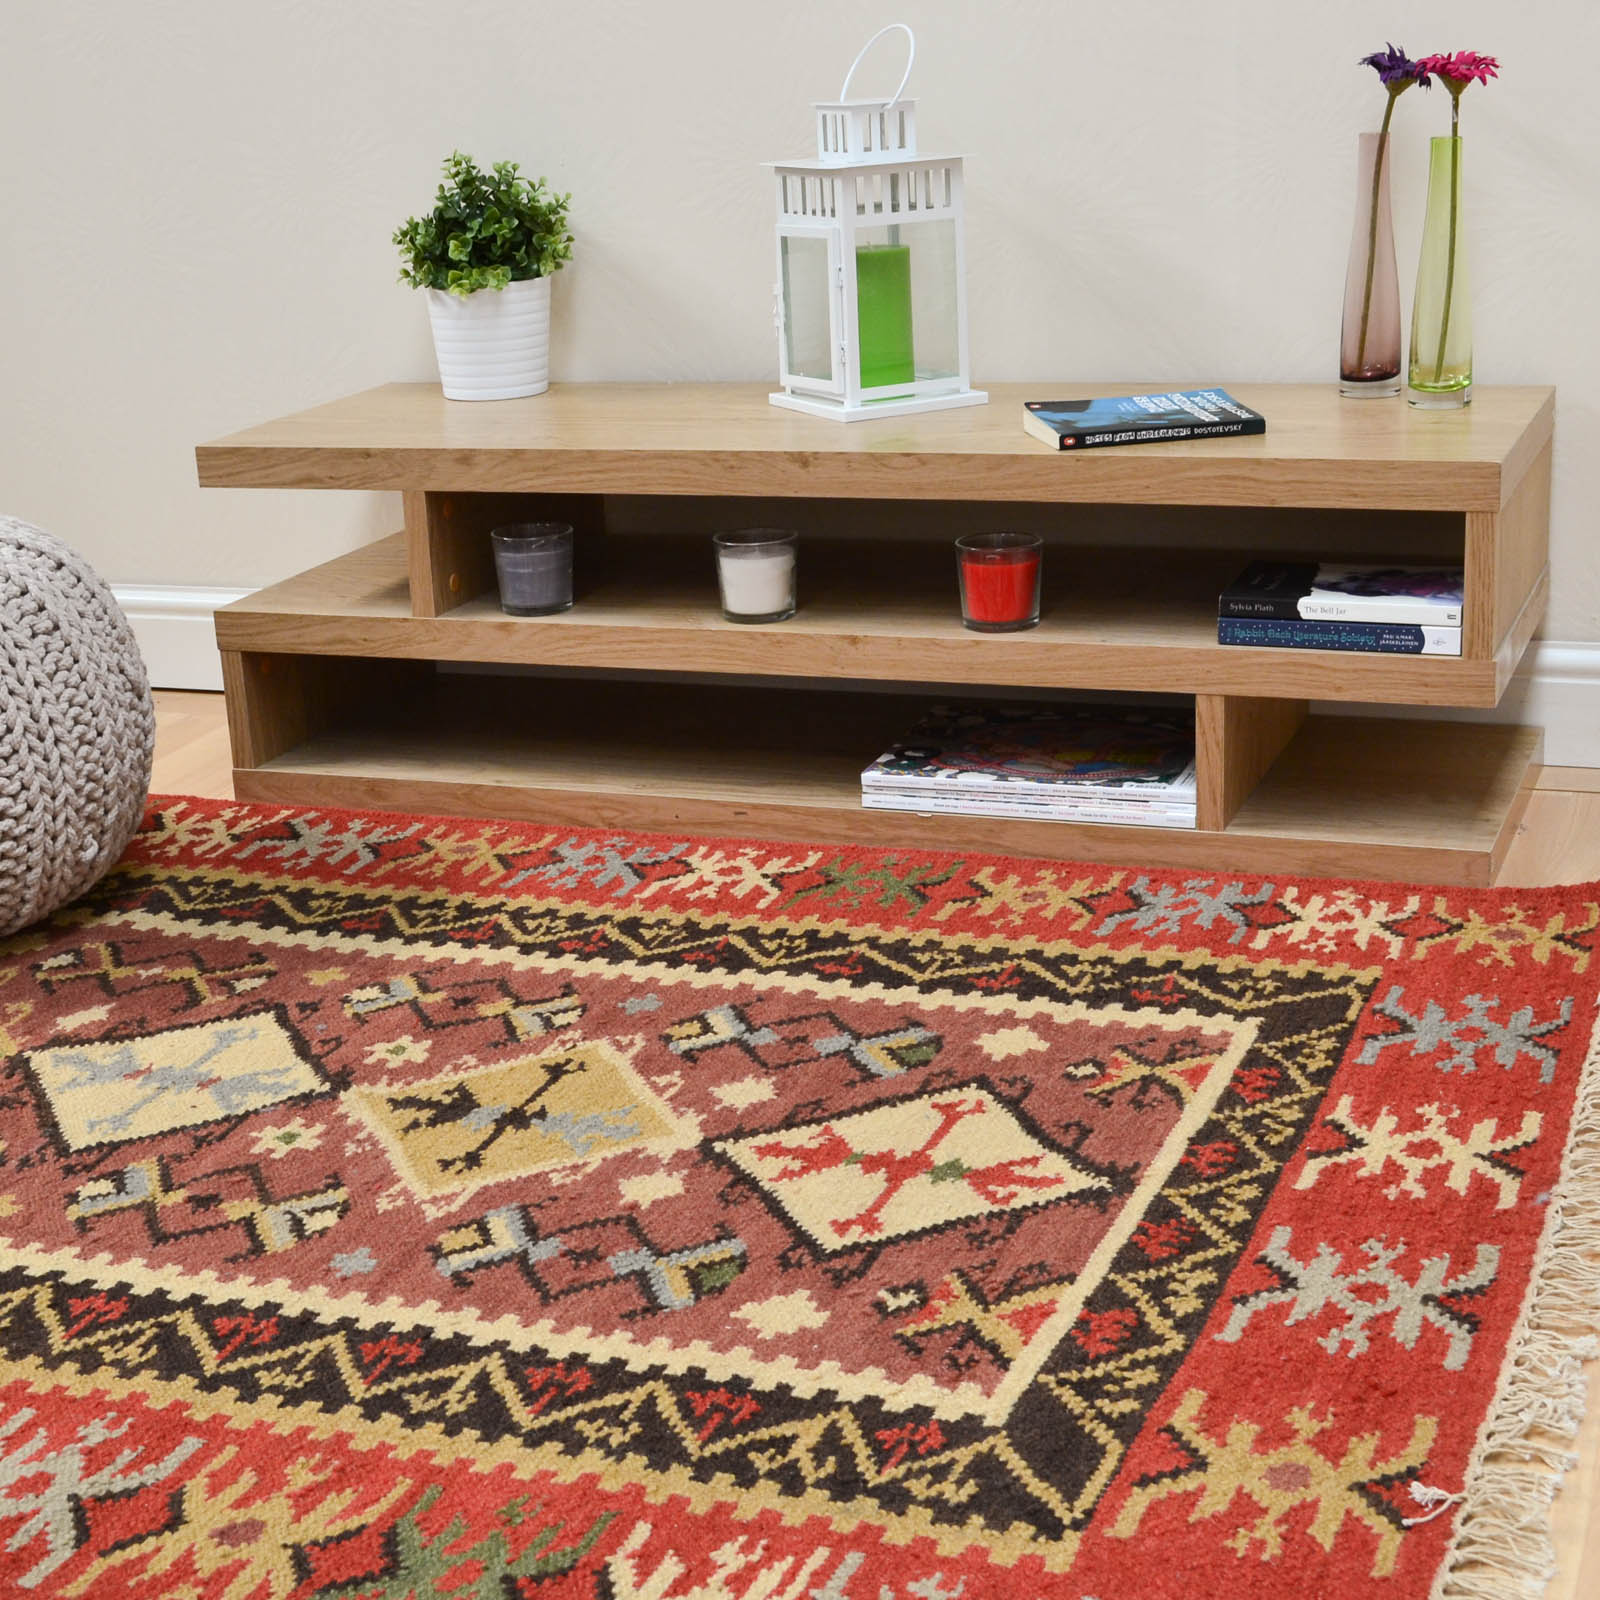 patterned red kilim rug from the rug seller in modern style living room